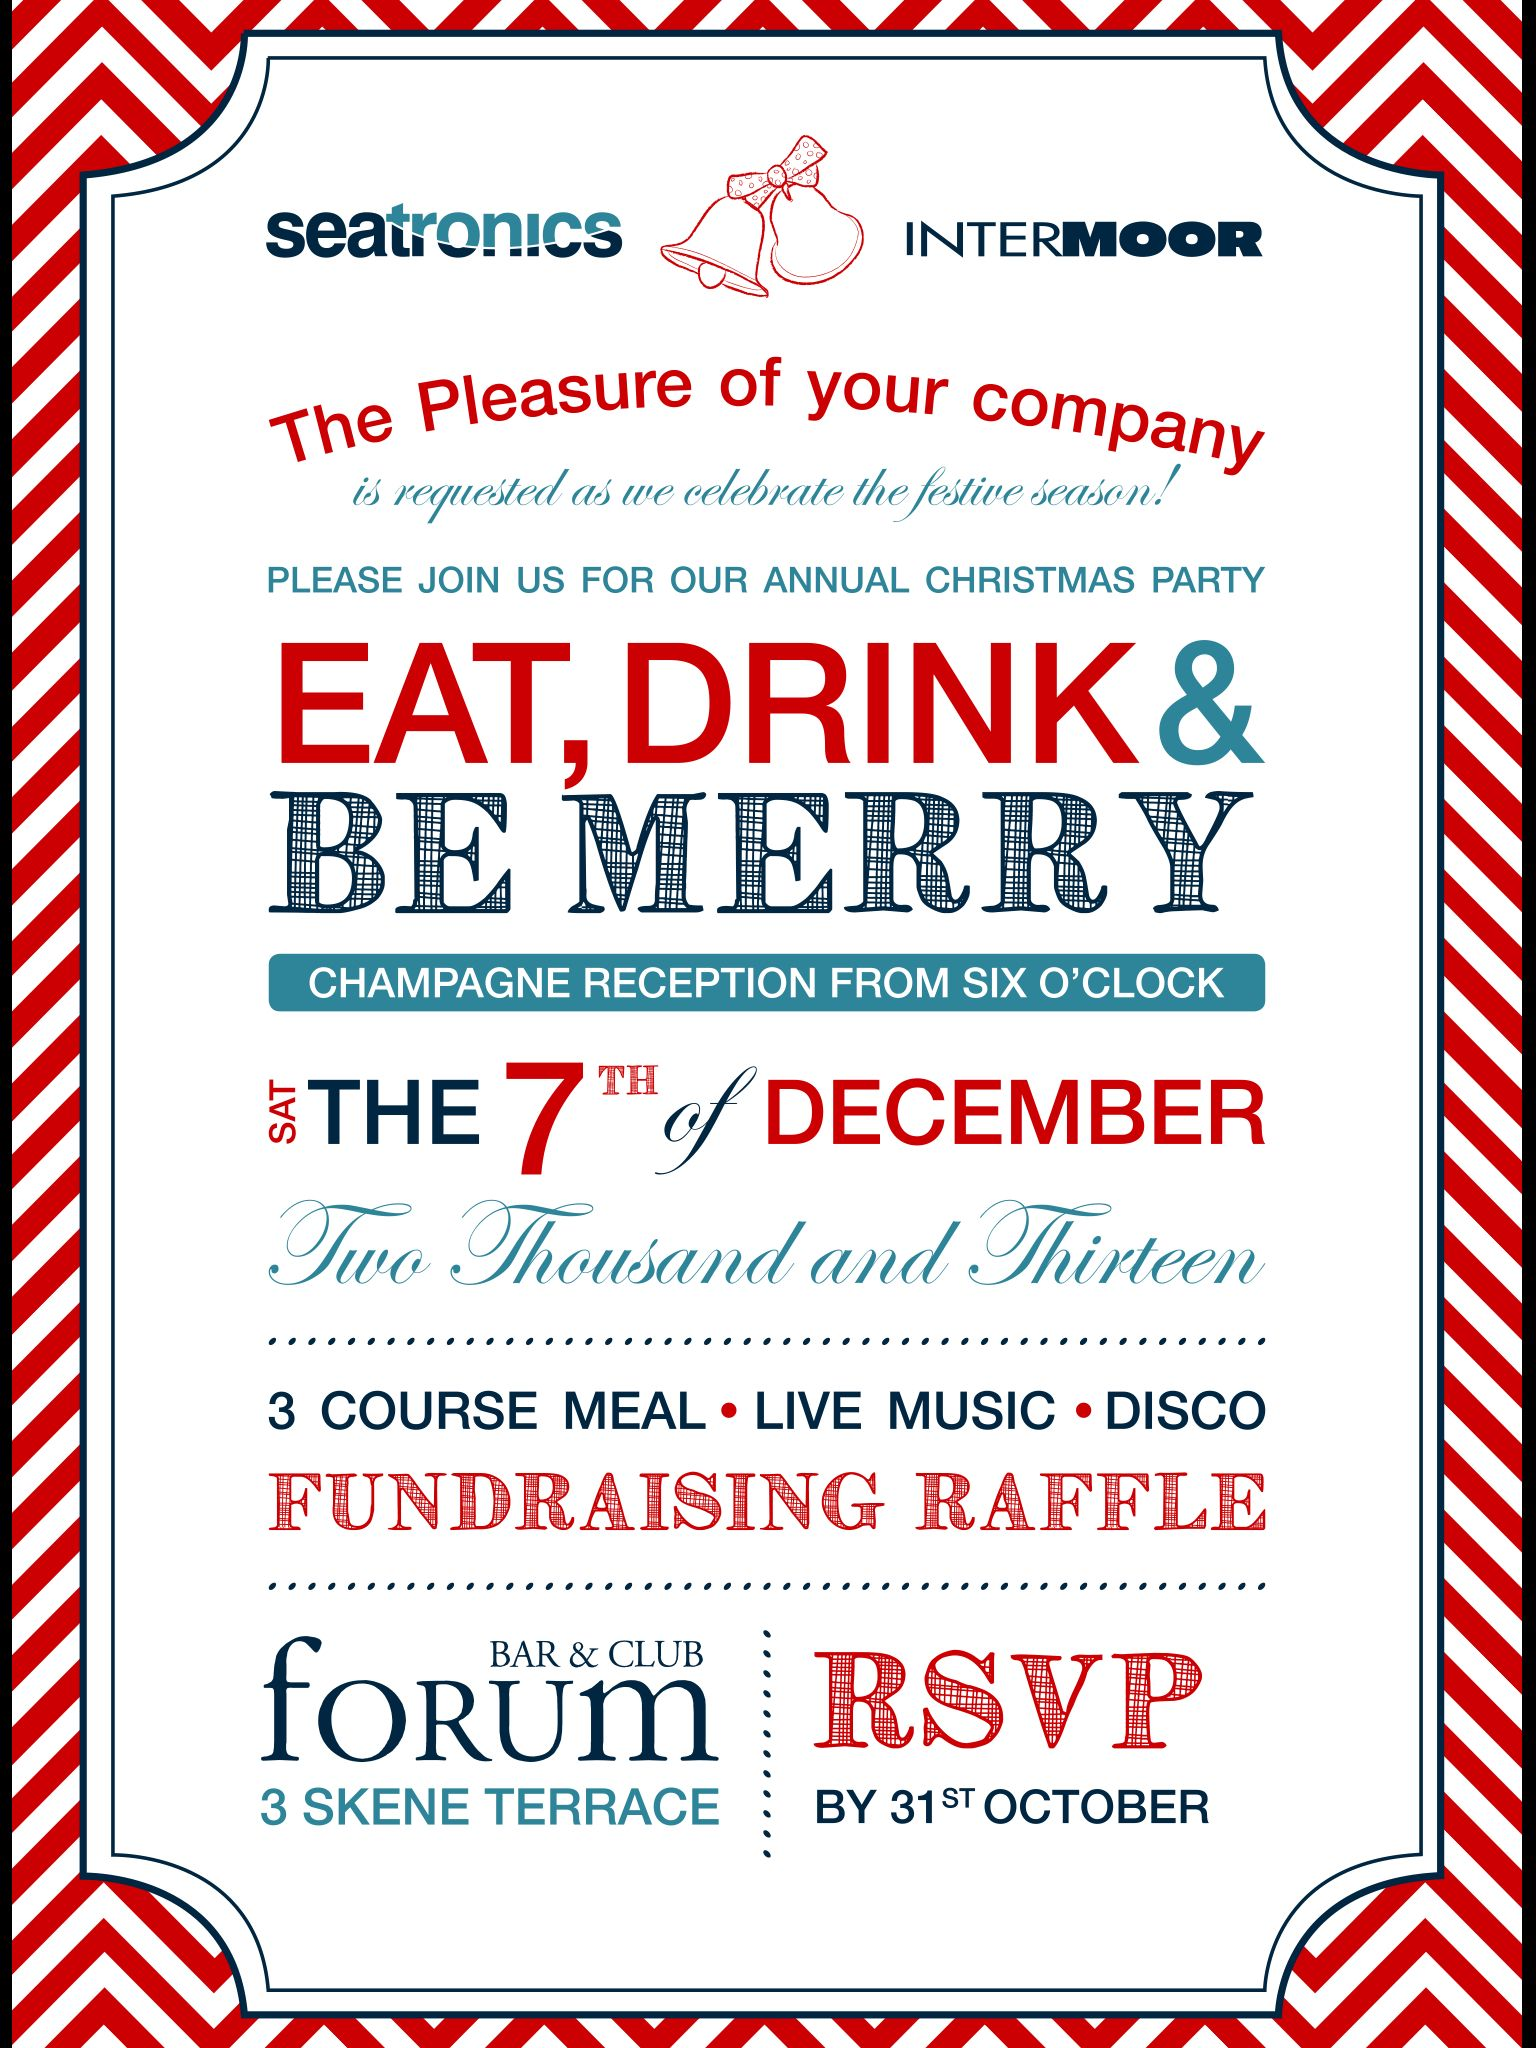 Good Christmas Party Poster Ideas Part - 14: Beautifully Designed Poster For Work Christmas Party